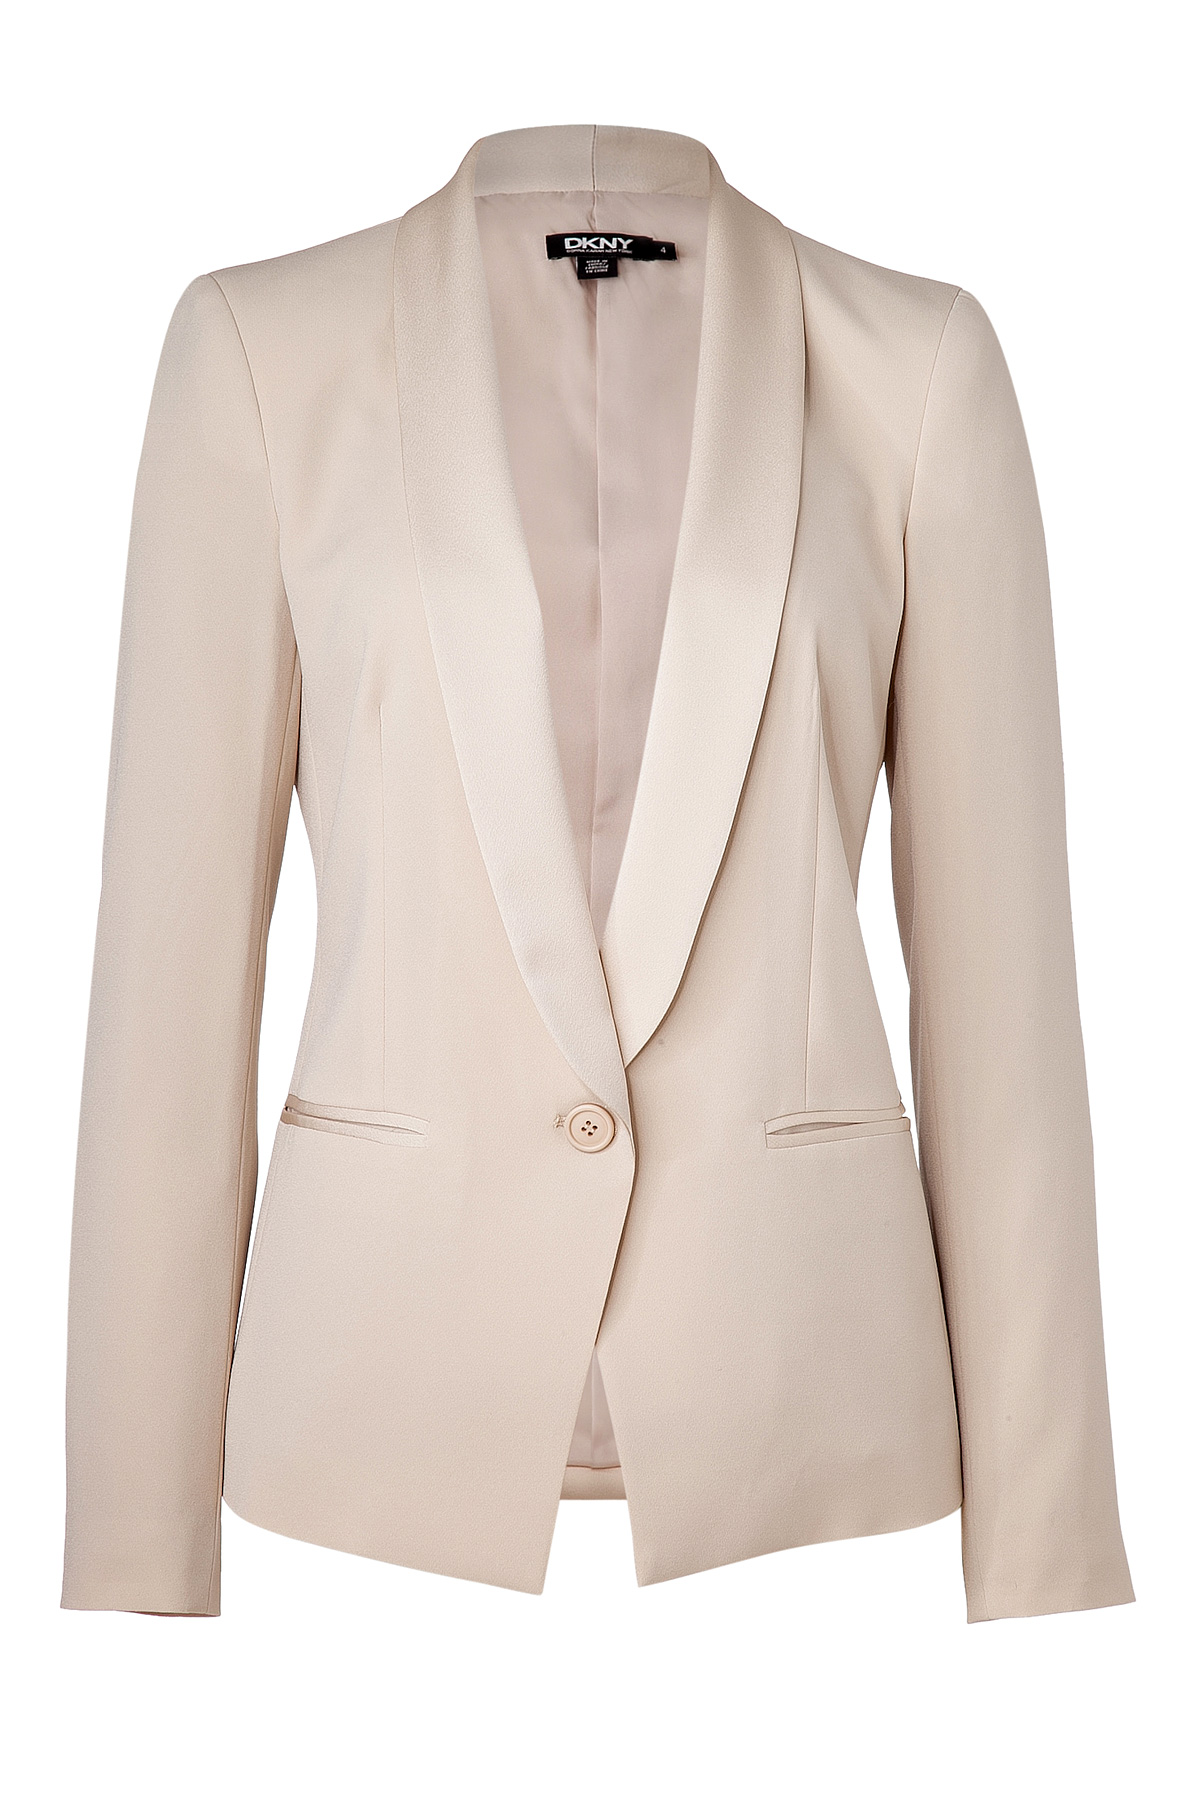 Find great deals on eBay for womens cream blazer. Shop with confidence.